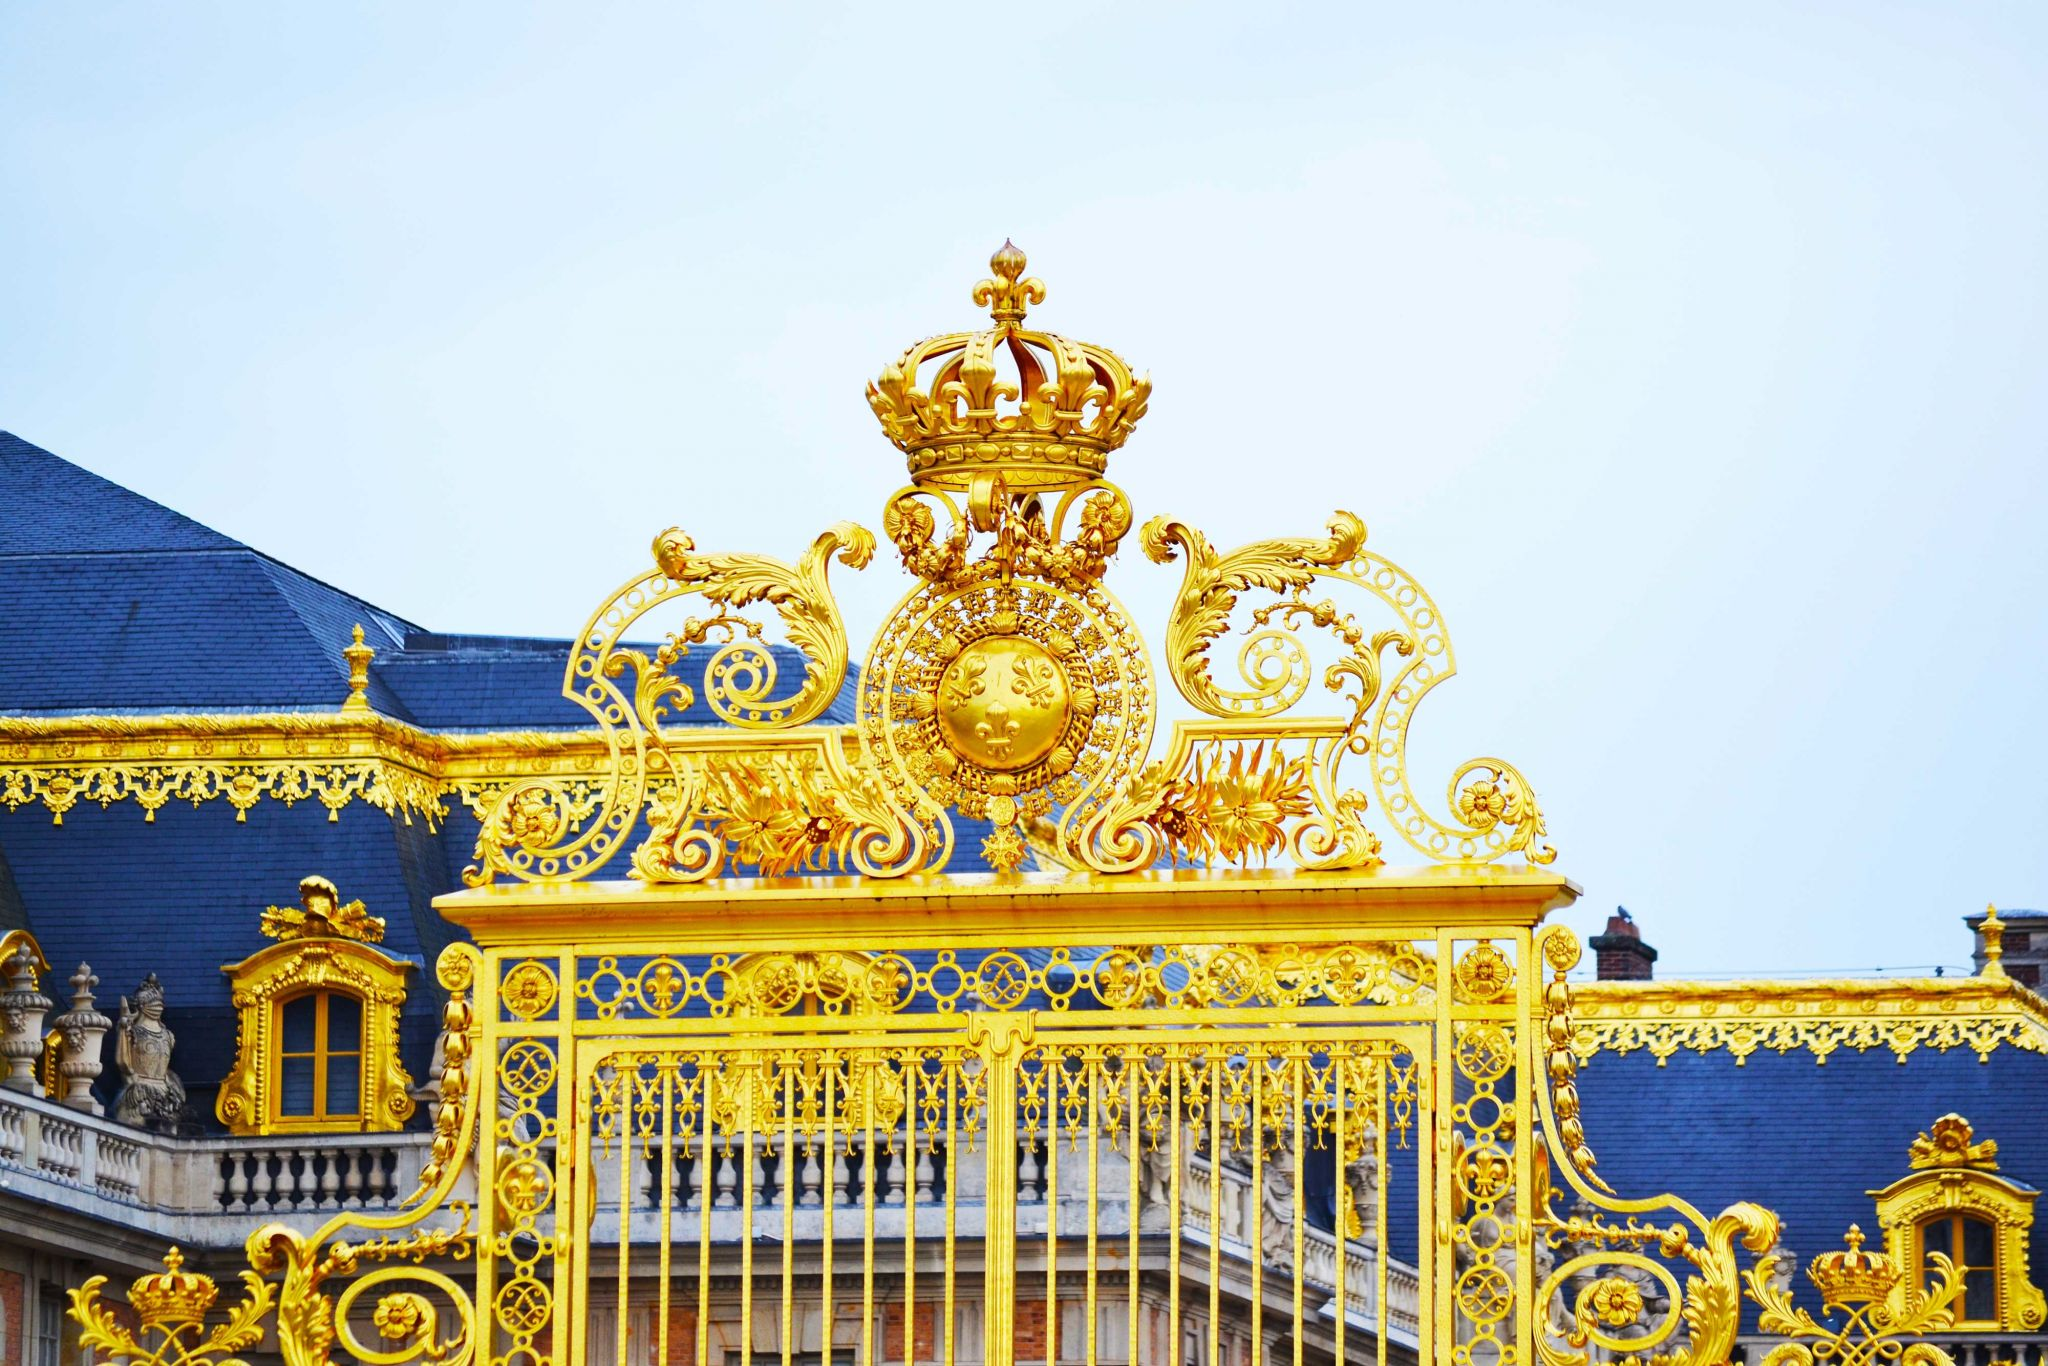 The Royal Gateway, Palace of Versailles, France